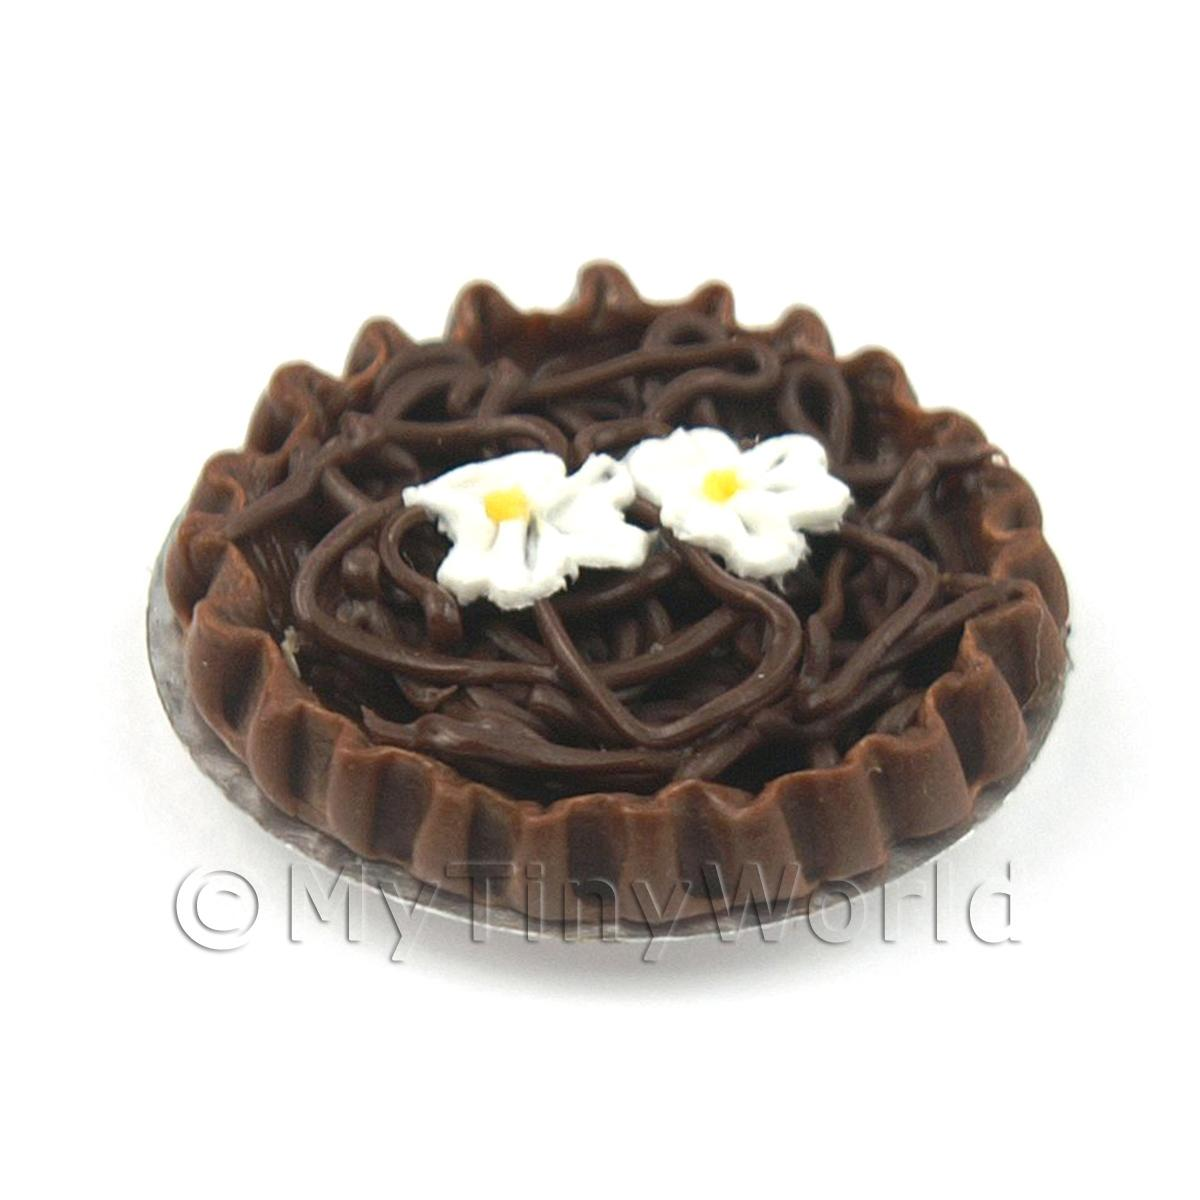 Dolls House Miniature Belgian Chocolate Tart